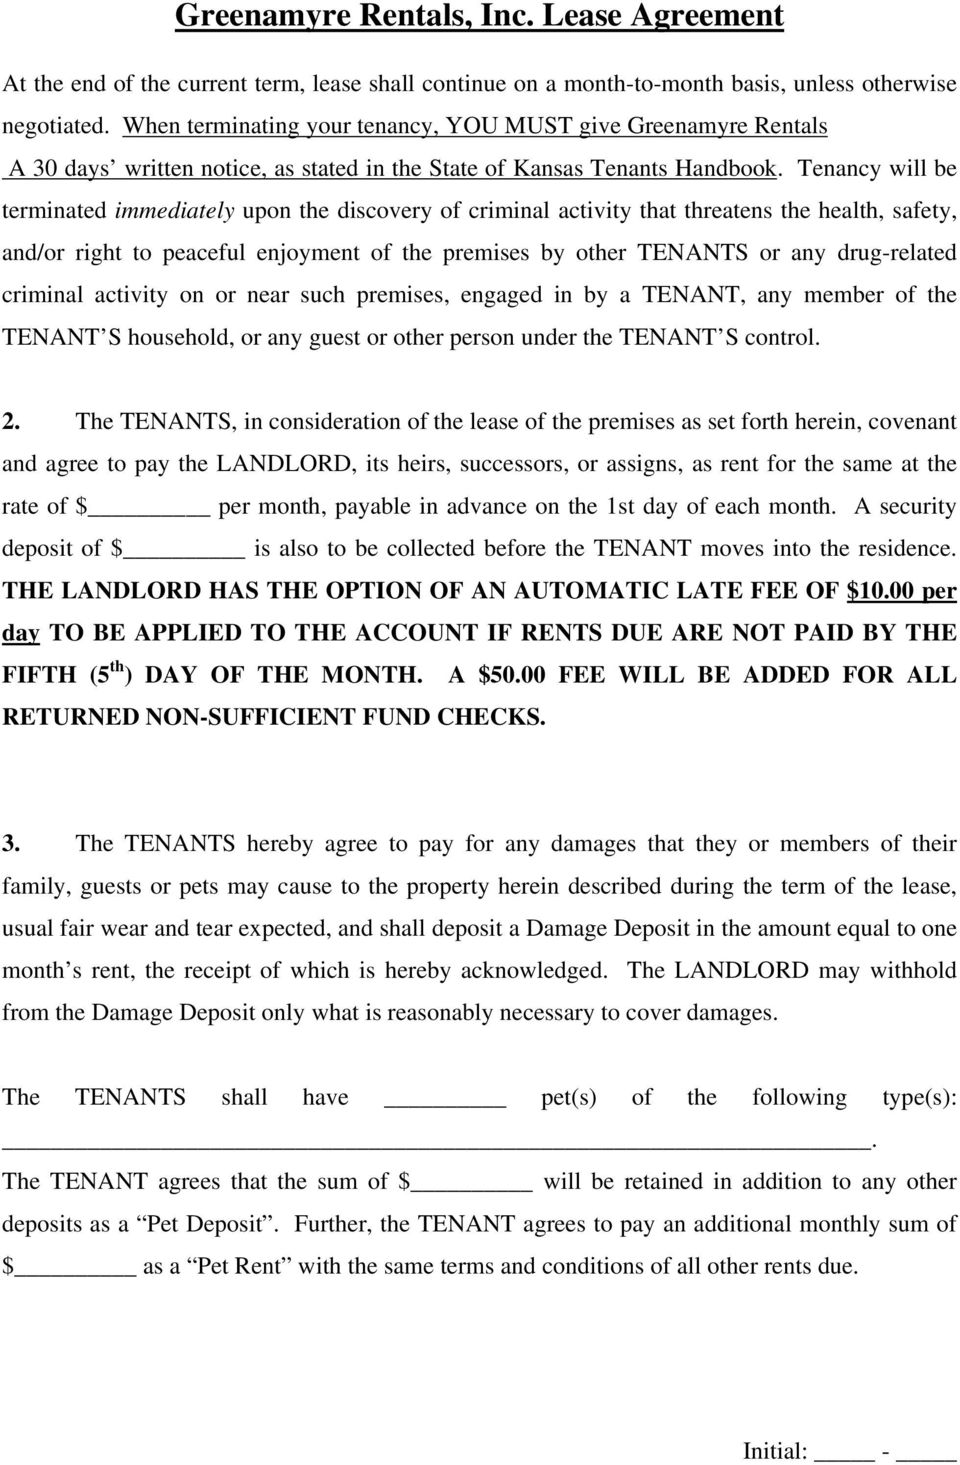 Tenancy will be terminated immediately upon the discovery of criminal activity that threatens the health, safety, and/or right to peaceful enjoyment of the premises by other TENANTS or any